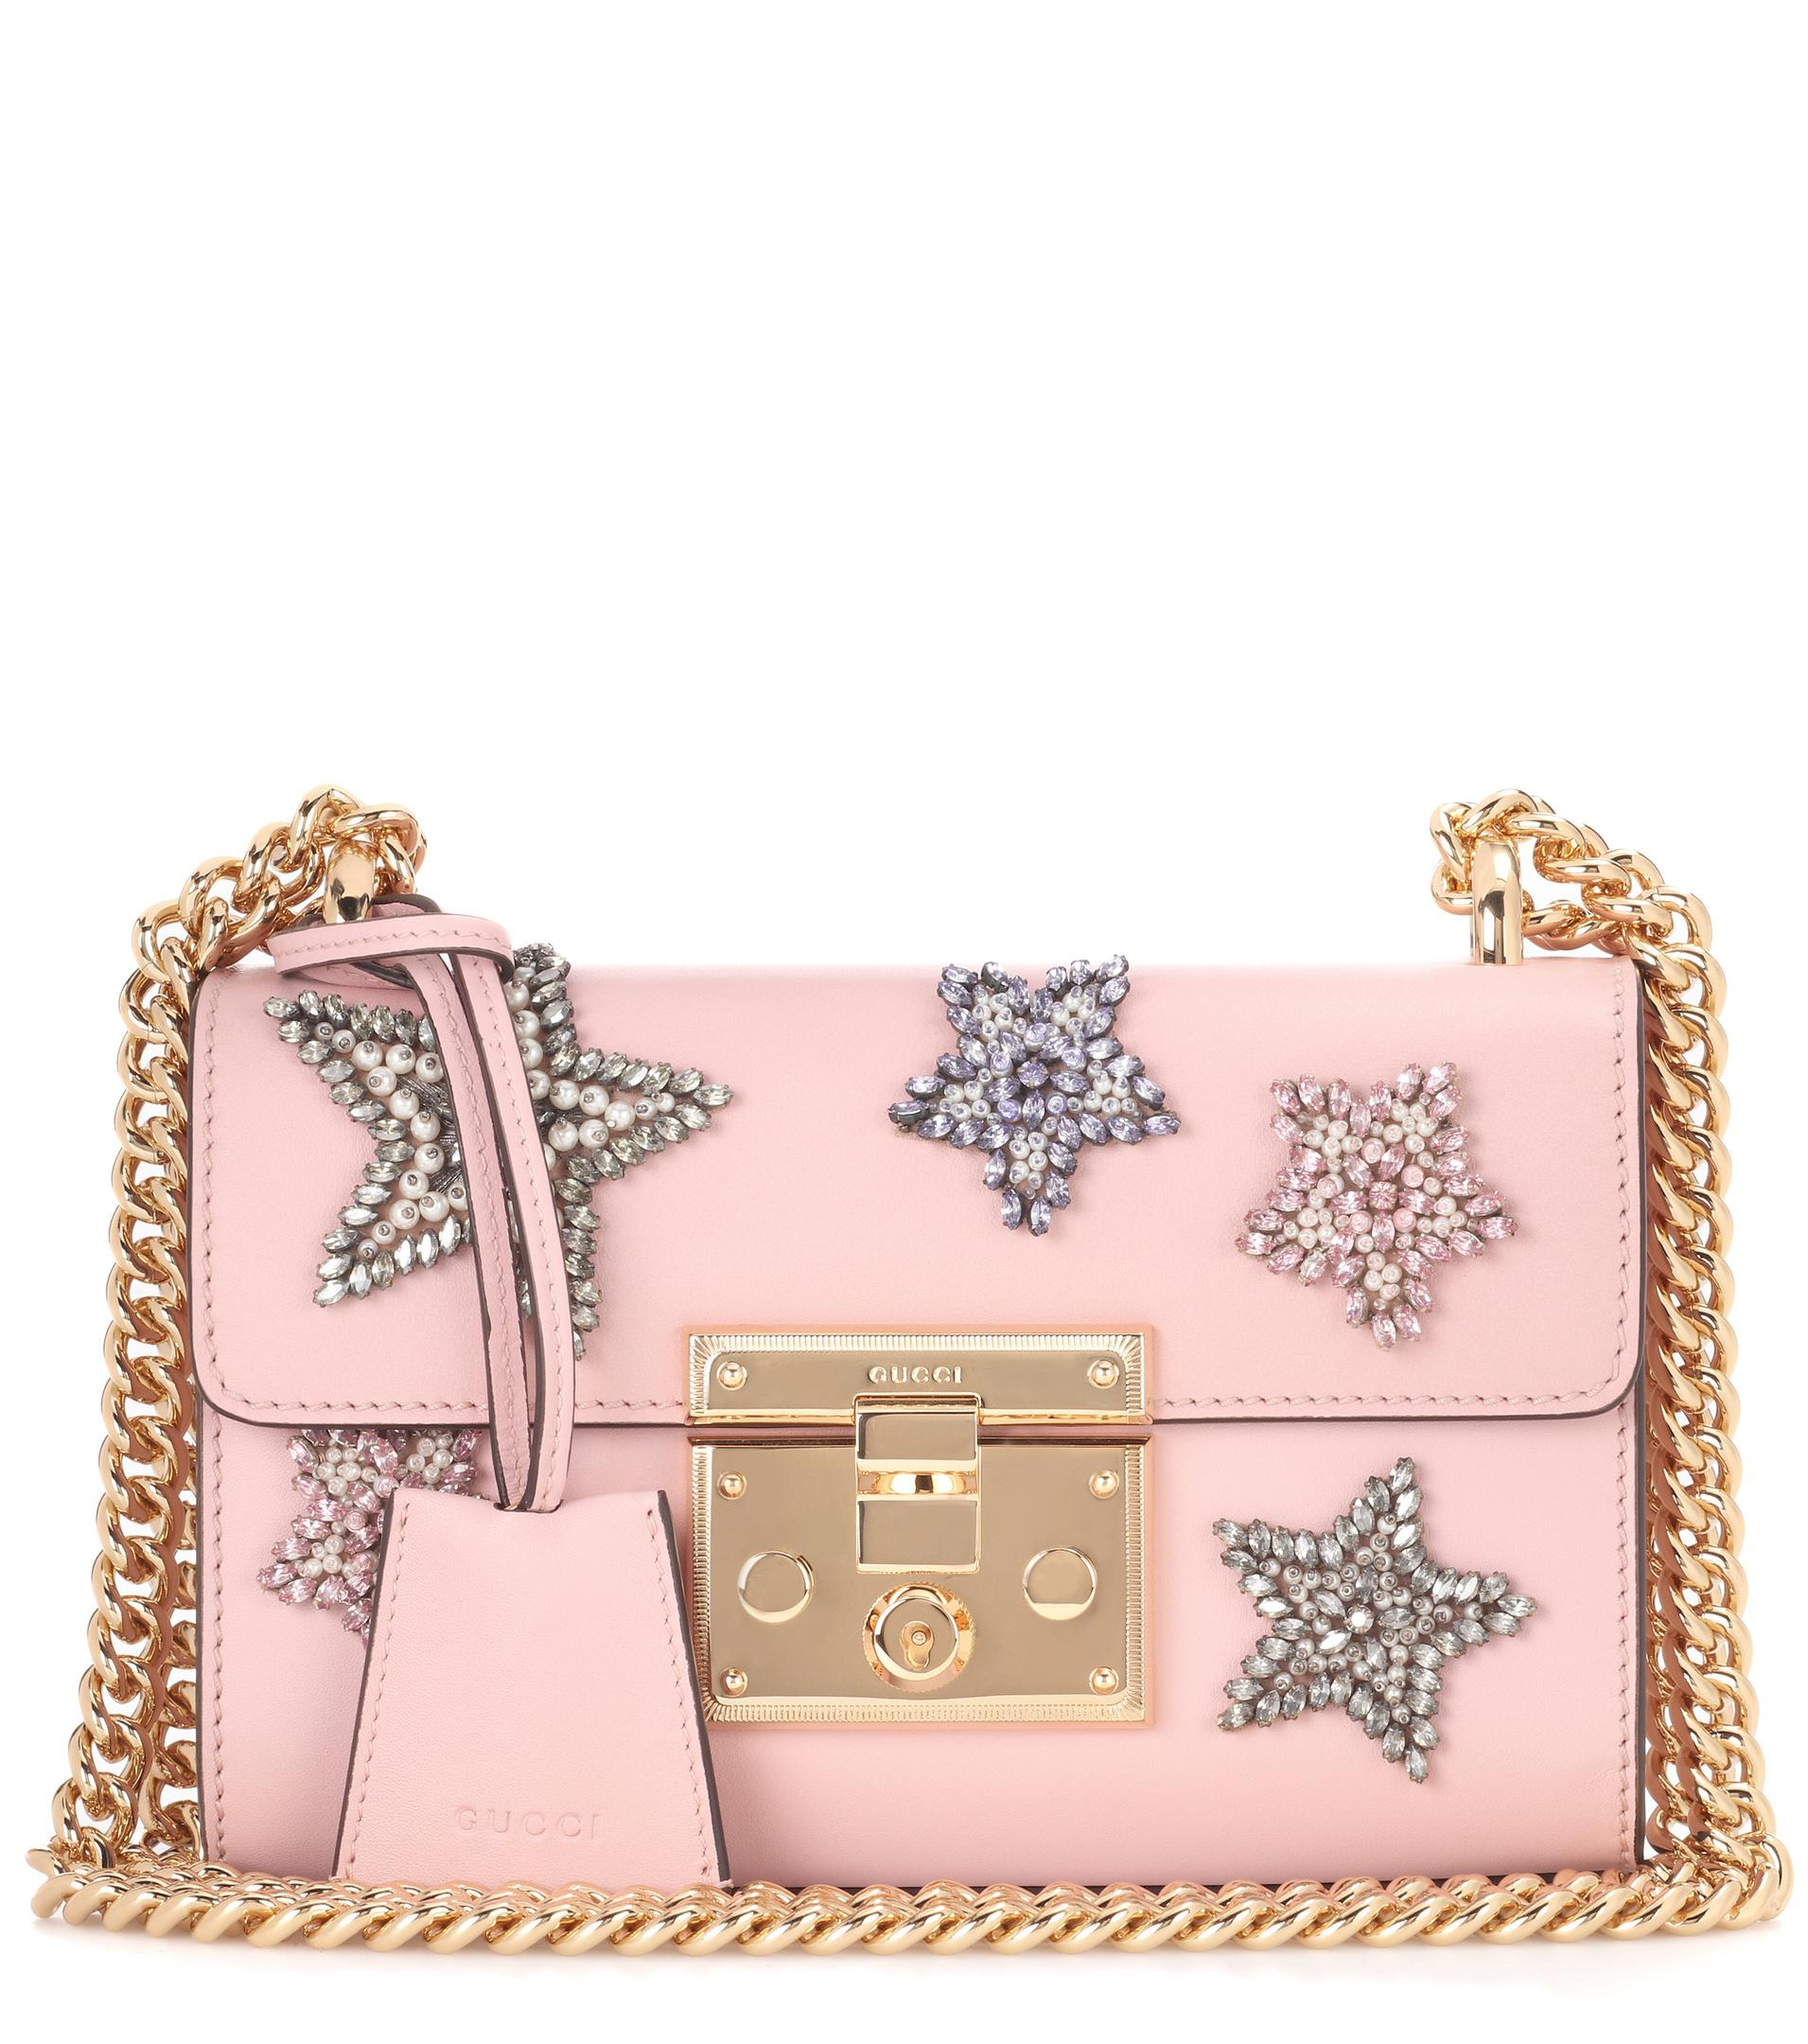 f3e8df085d6 Lyst - Gucci Padlock Embellished Leather Shoulder Bag in Pink